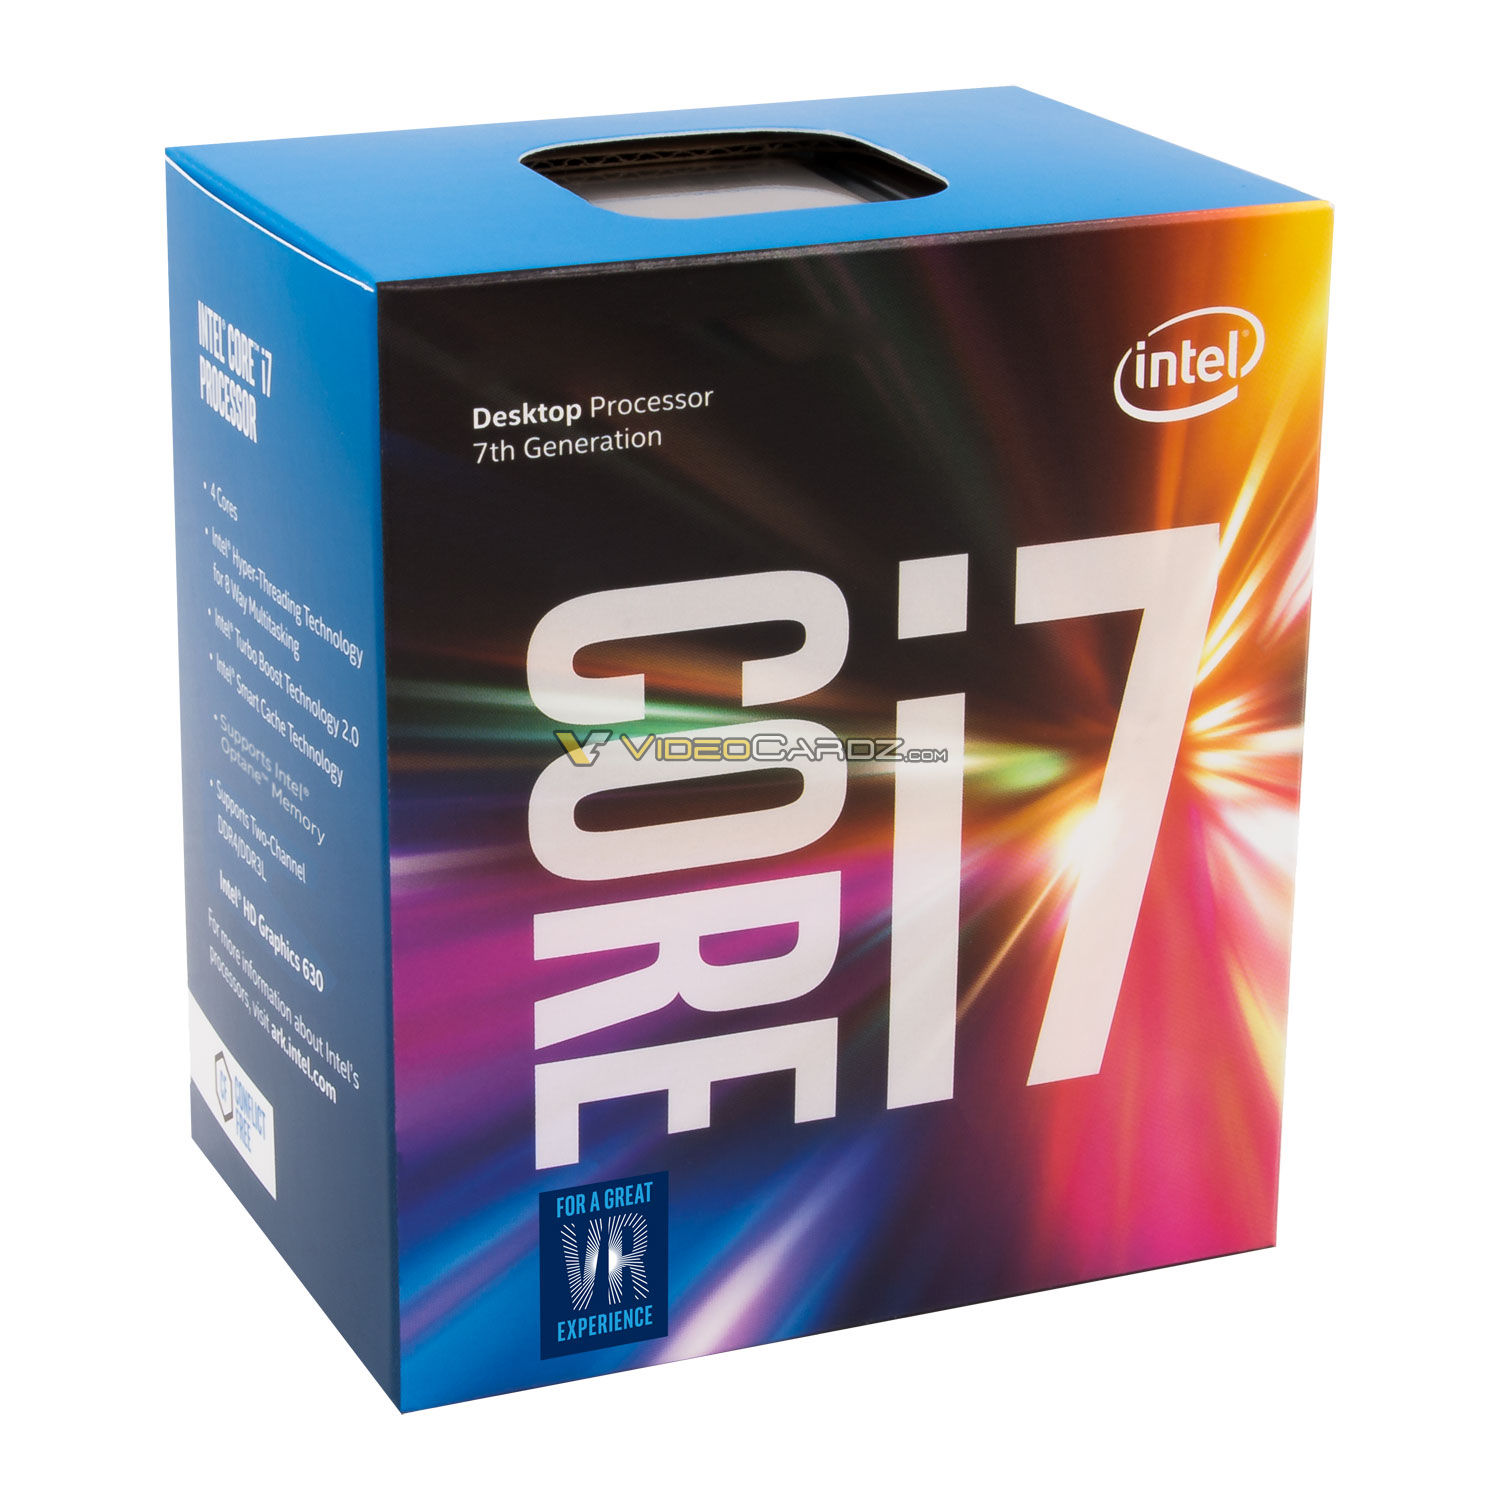 Intel Kaby Lake Core i7-7700K and Core i5-7600K Review Published